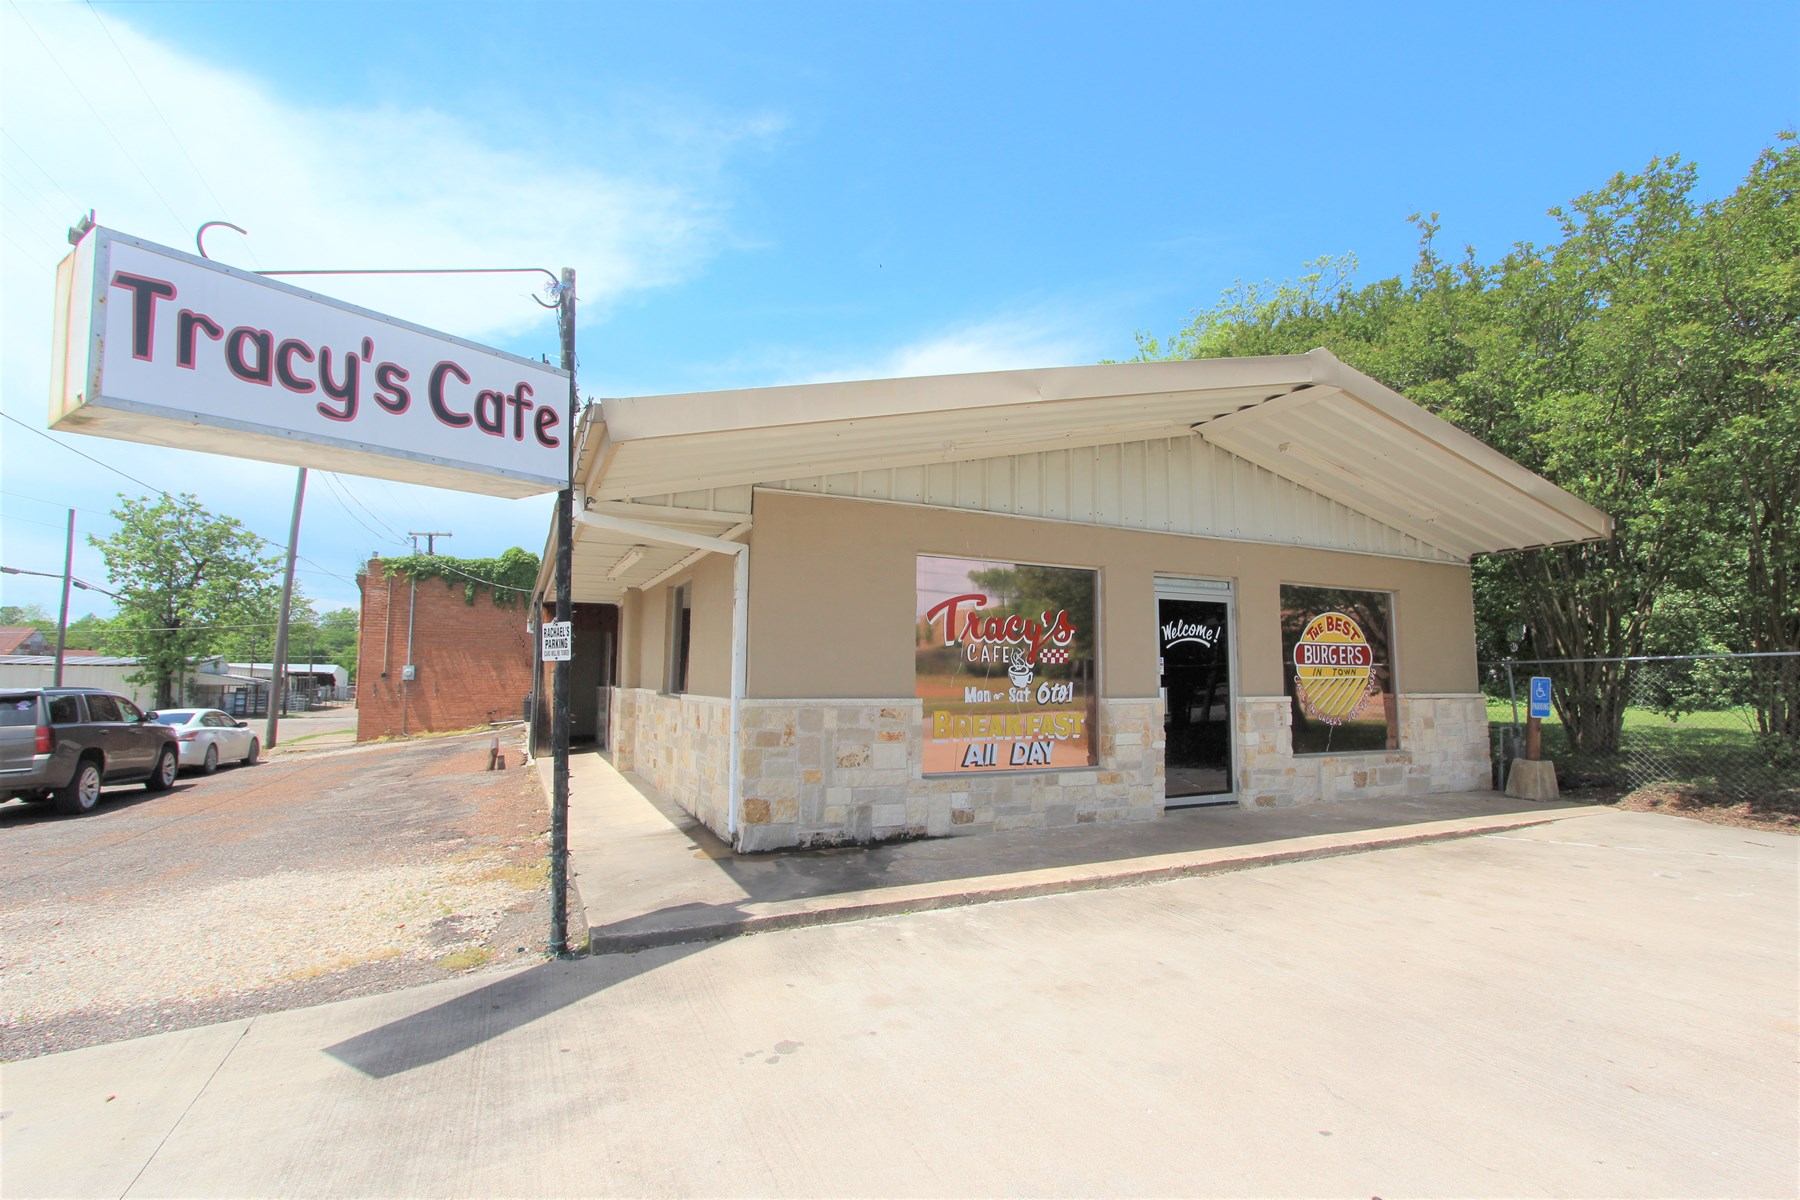 Commercial Restaurant Business For Sale Clarksville Texas